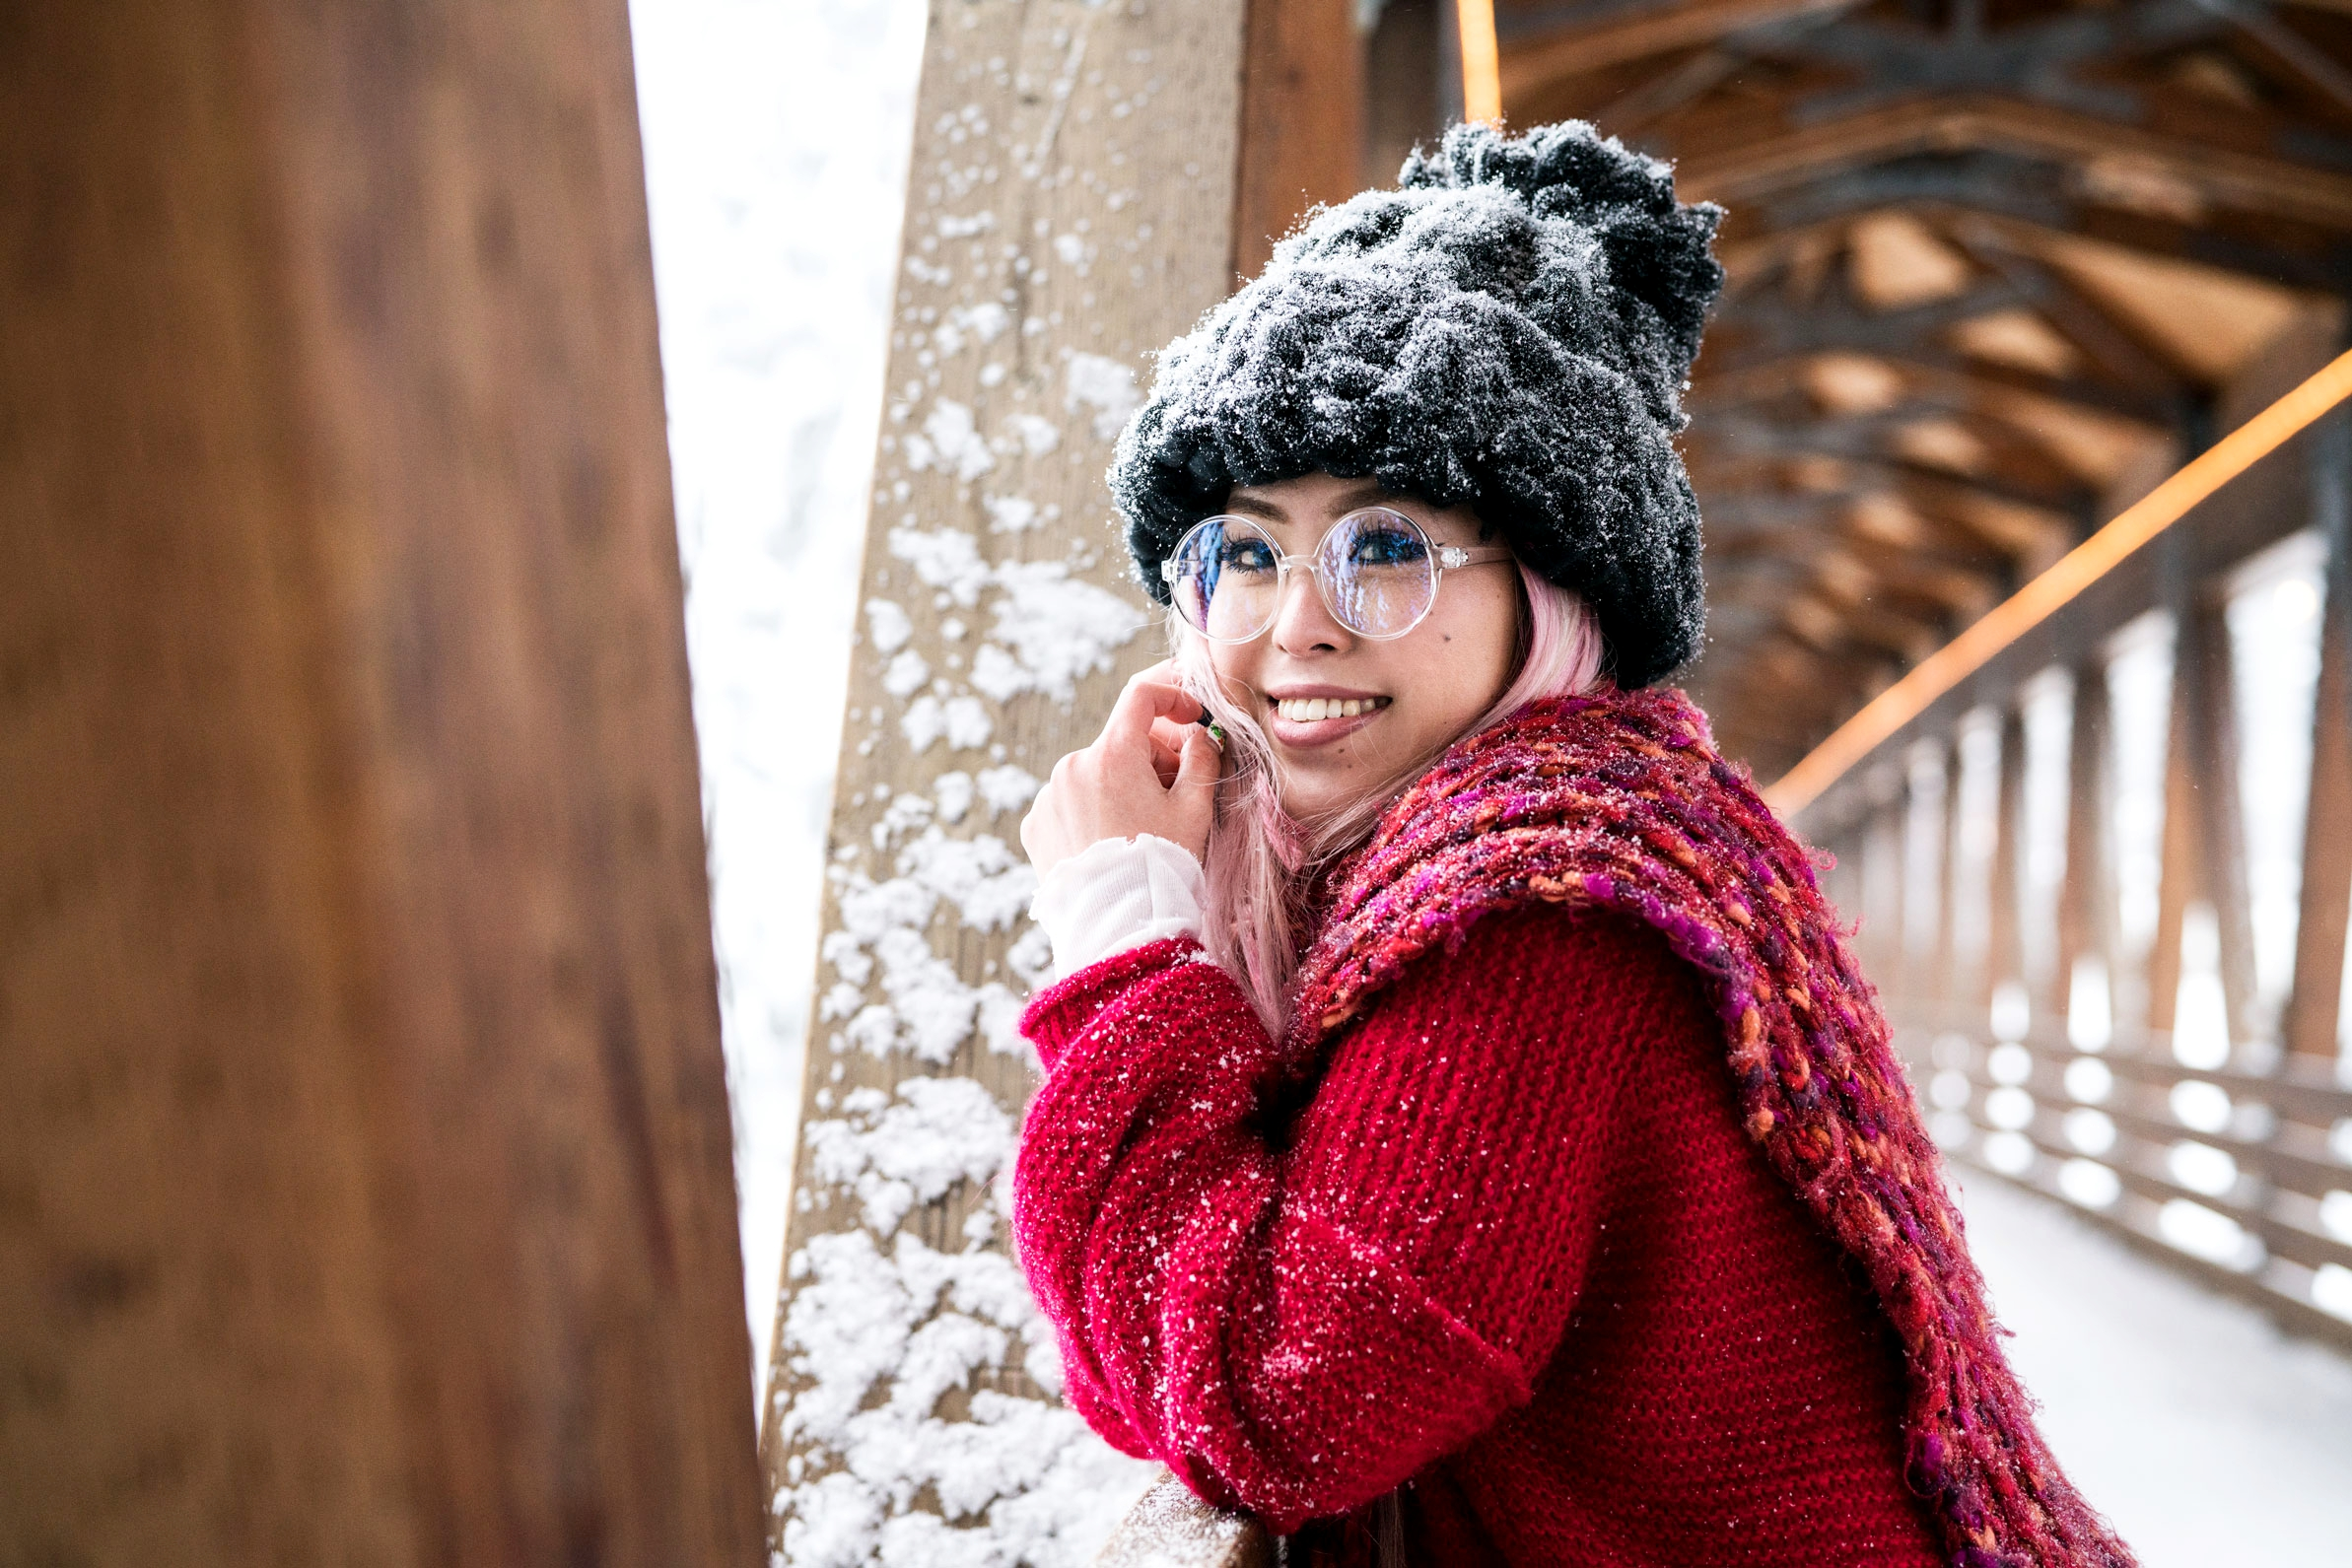 H&M Multi Colored Scarf, Transparent Clear Lens Glasses, Free people All Mine Sweater, Free People Modern Cuff Layering Top, Free People Ace High Rise Jeans, Free People Bobbi Chunky Pom Beanie, EGO Ankle Boots, Aika's Love Closet, Seattle Fashion Blogger from Japan, Pink Hair 12